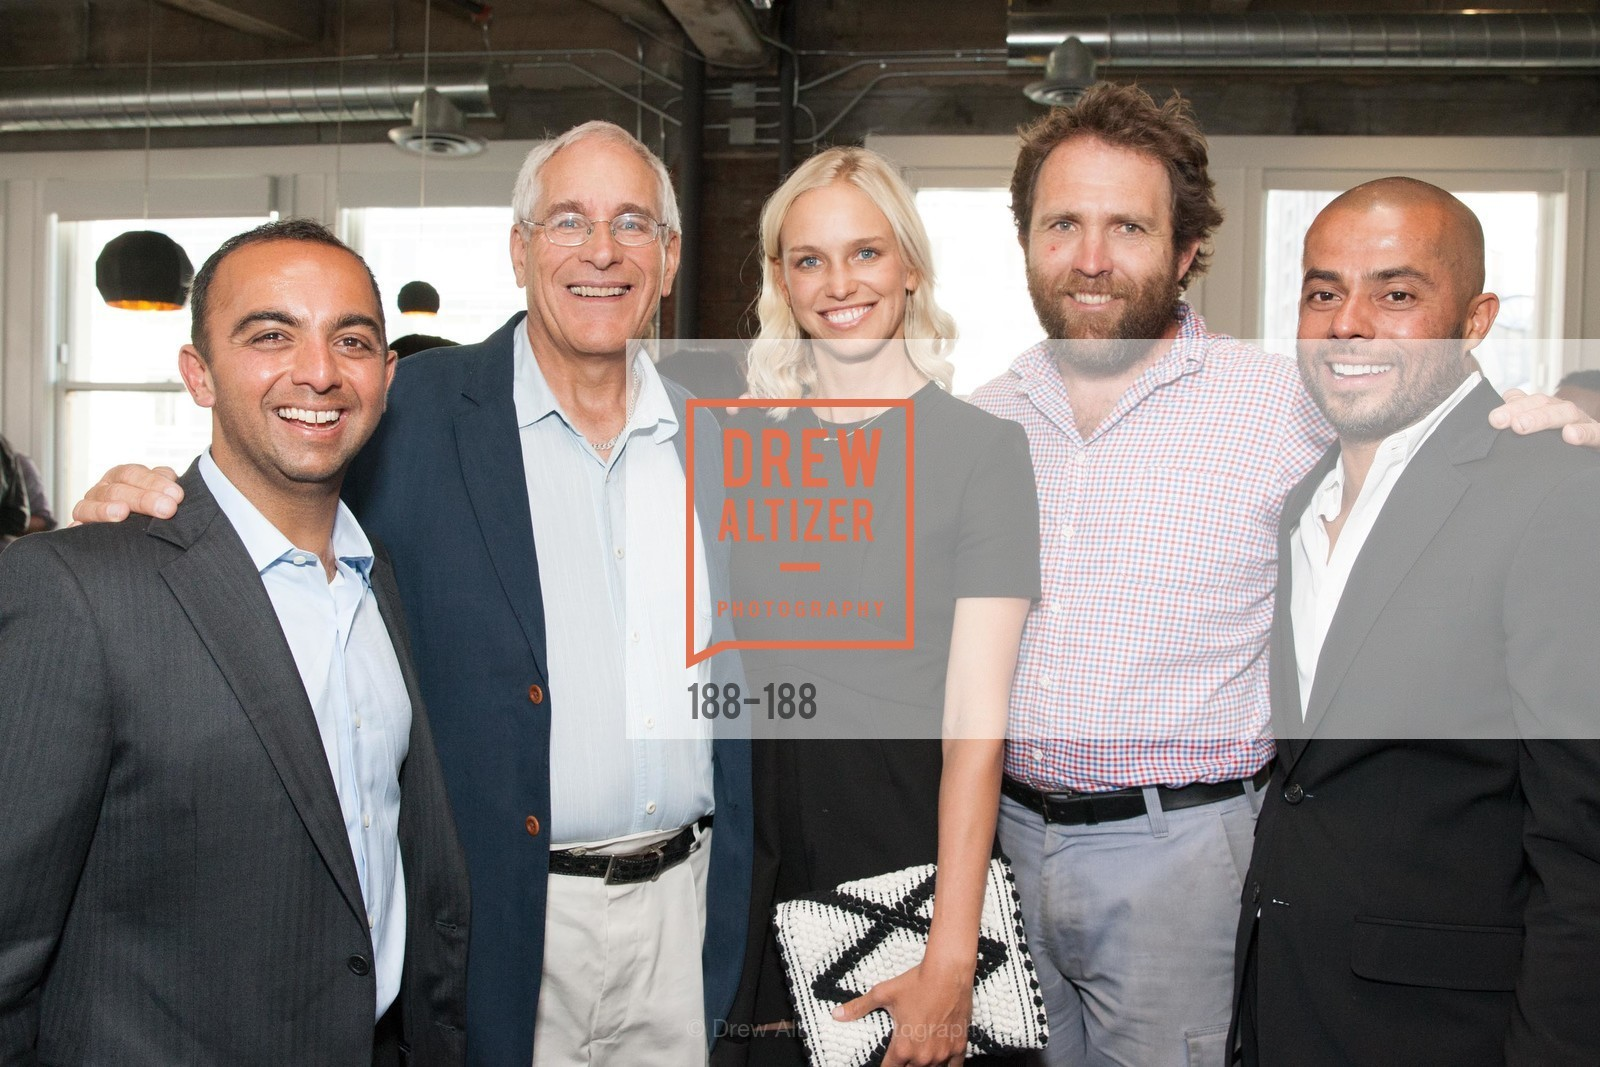 Amish Chande, Roy Southworth, Lucy Page, Saul Griffith, Nashid Chande, Twigtale Celebration Hosted By Zem Joaquin, Medium. 760 Market St, June 24th, 2015,Drew Altizer, Drew Altizer Photography, full-service agency, private events, San Francisco photographer, photographer california